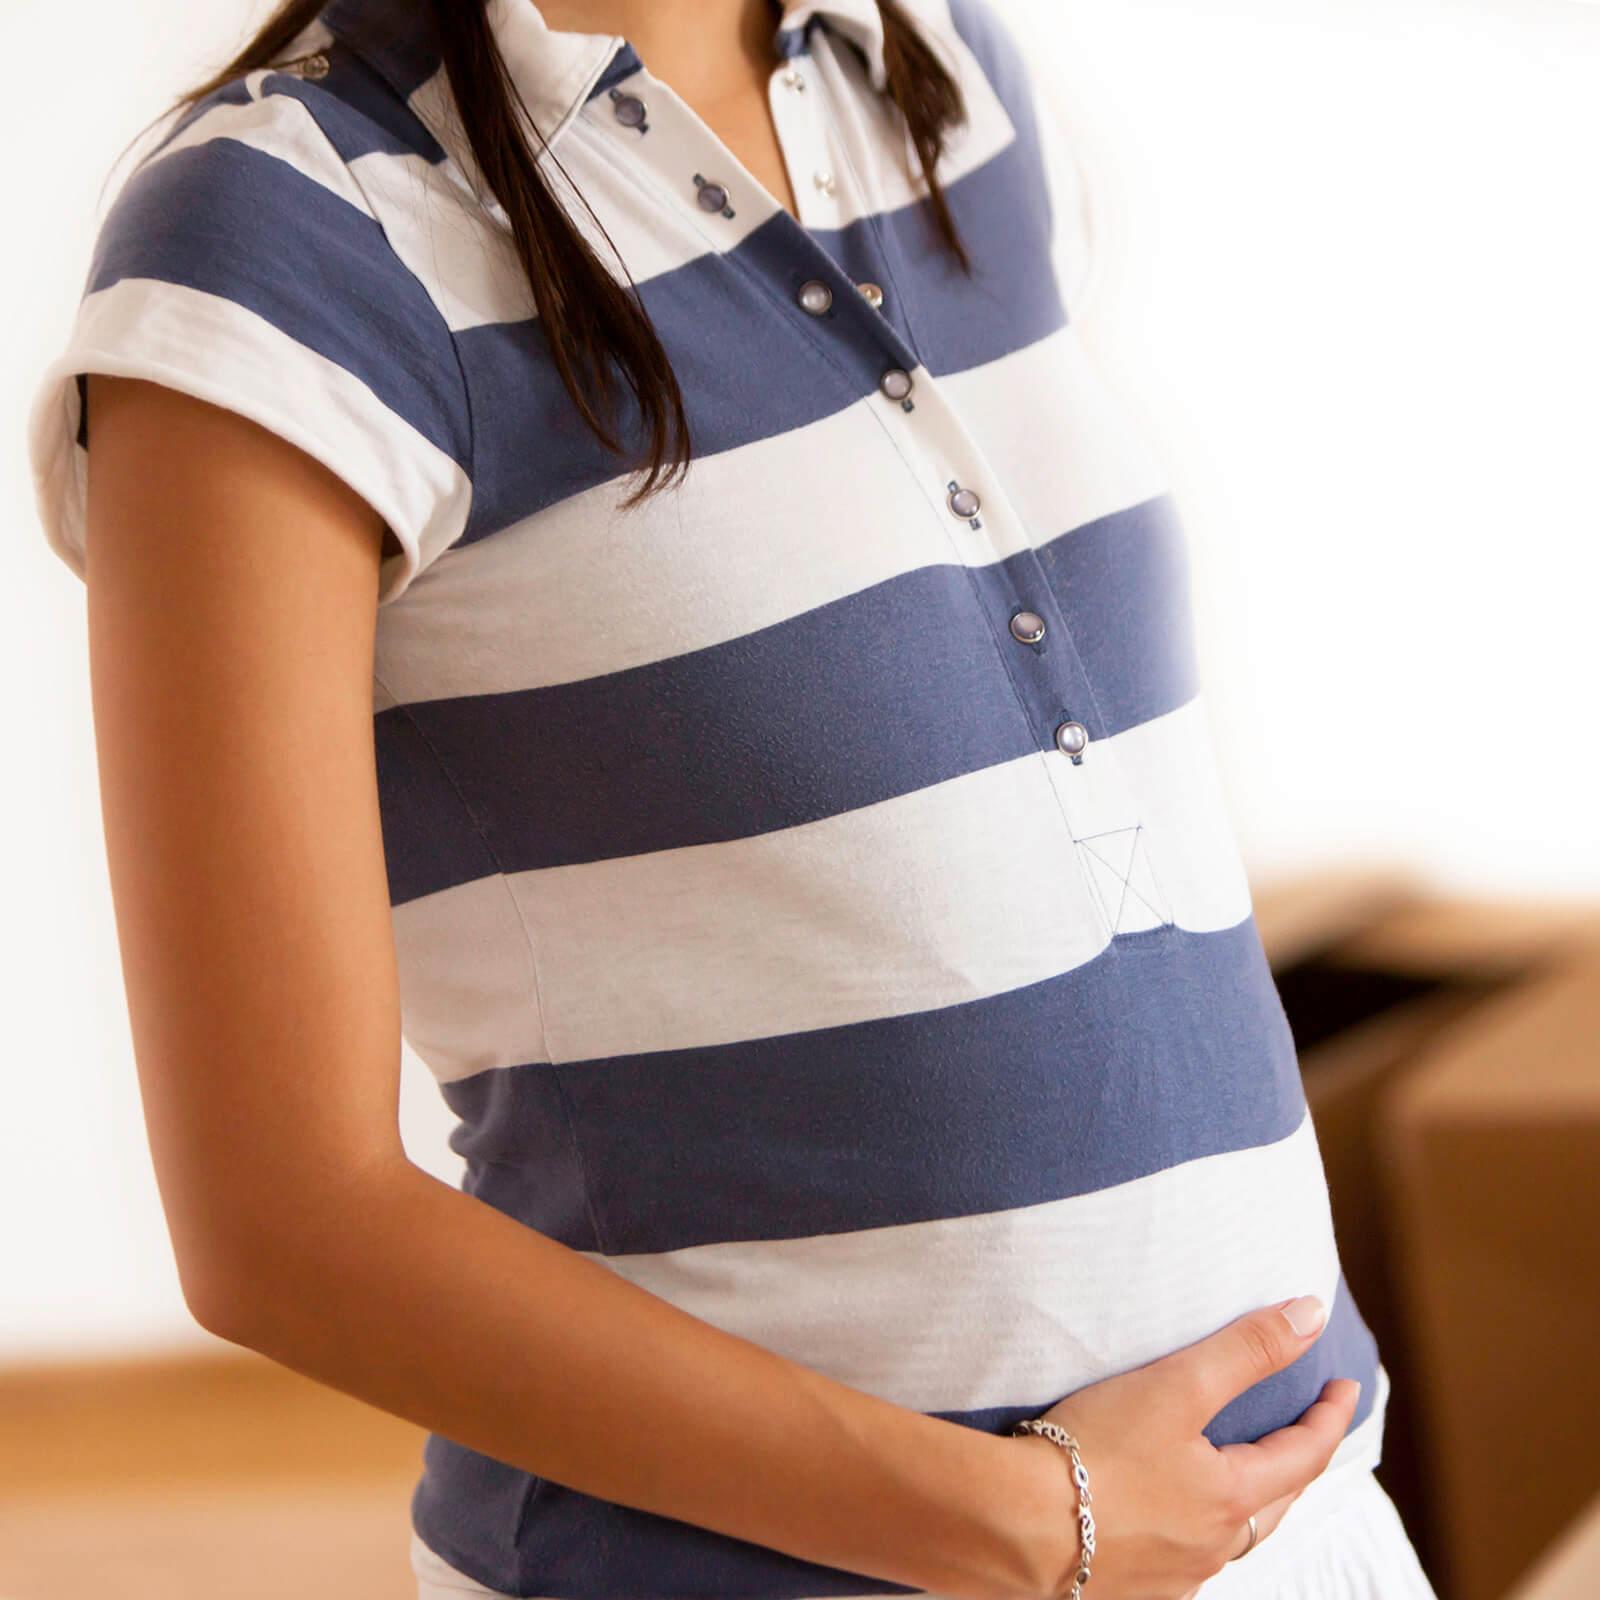 1-maternity-polo-shirts.jpg